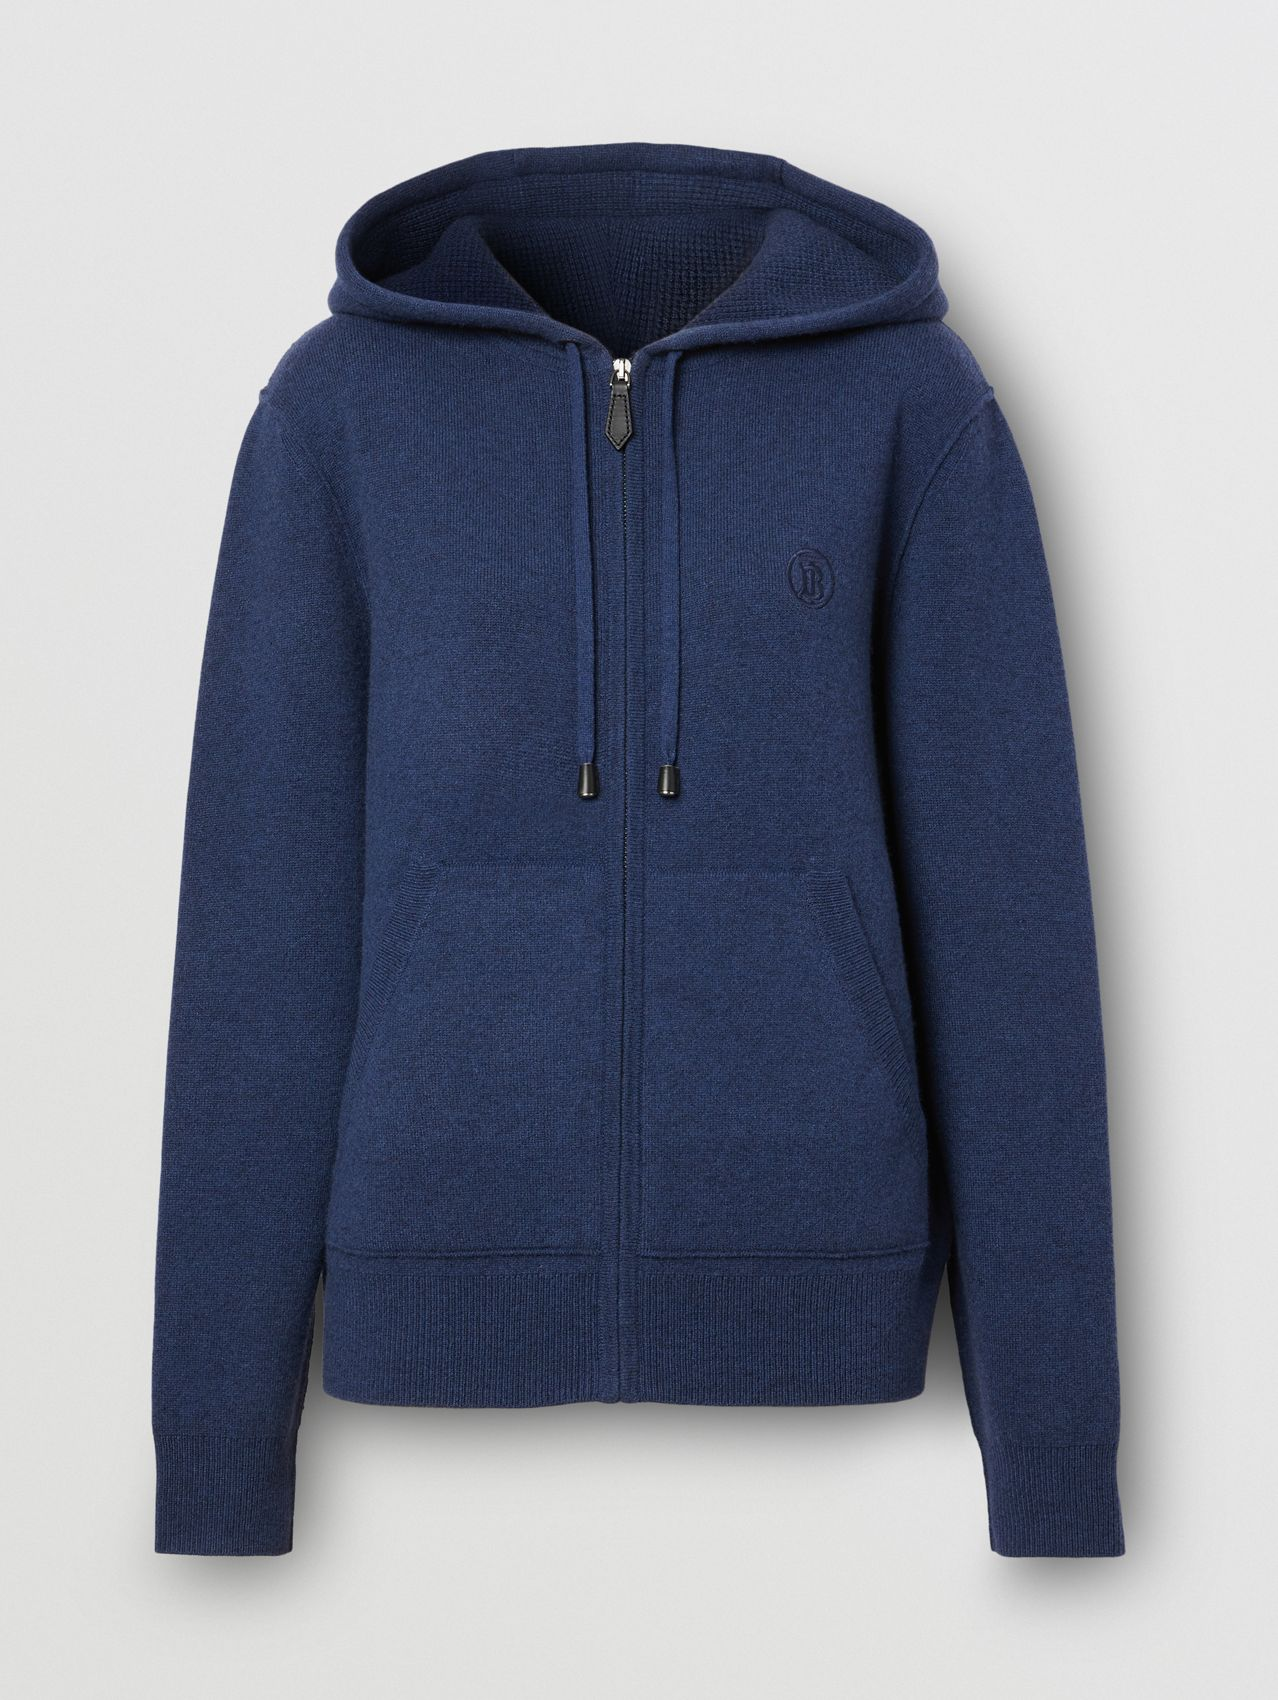 Monogram Motif Cashmere Blend Hooded Top in Ink Blue